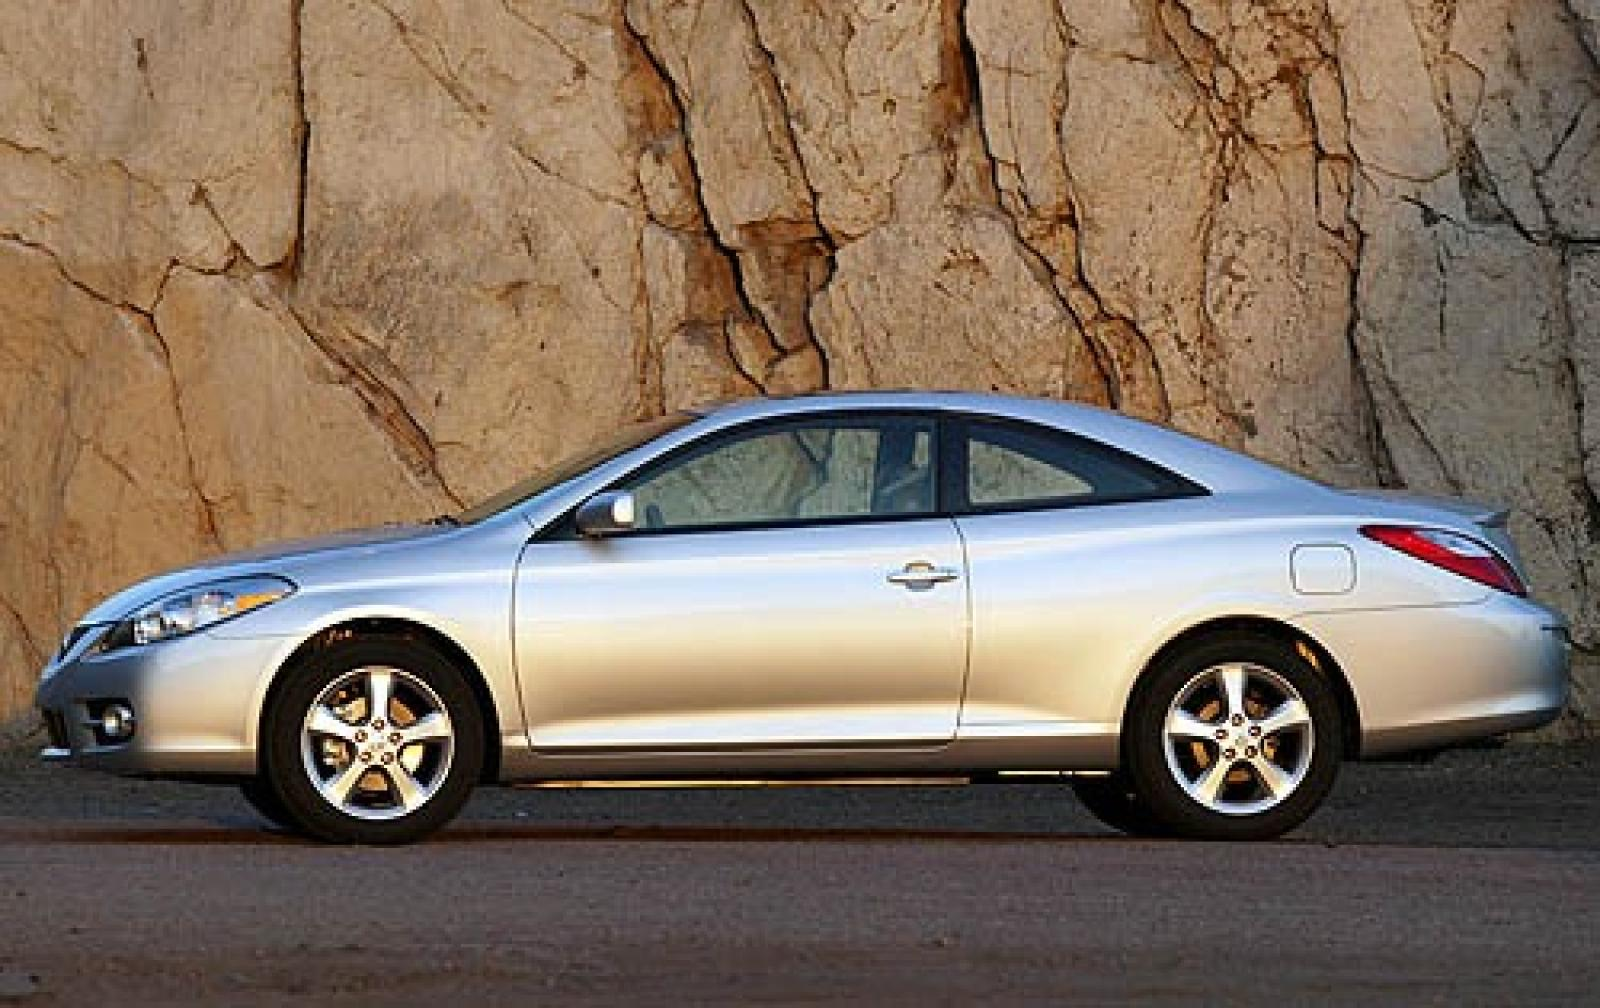 2008 toyota camry solara information and photos zombiedrive. Black Bedroom Furniture Sets. Home Design Ideas